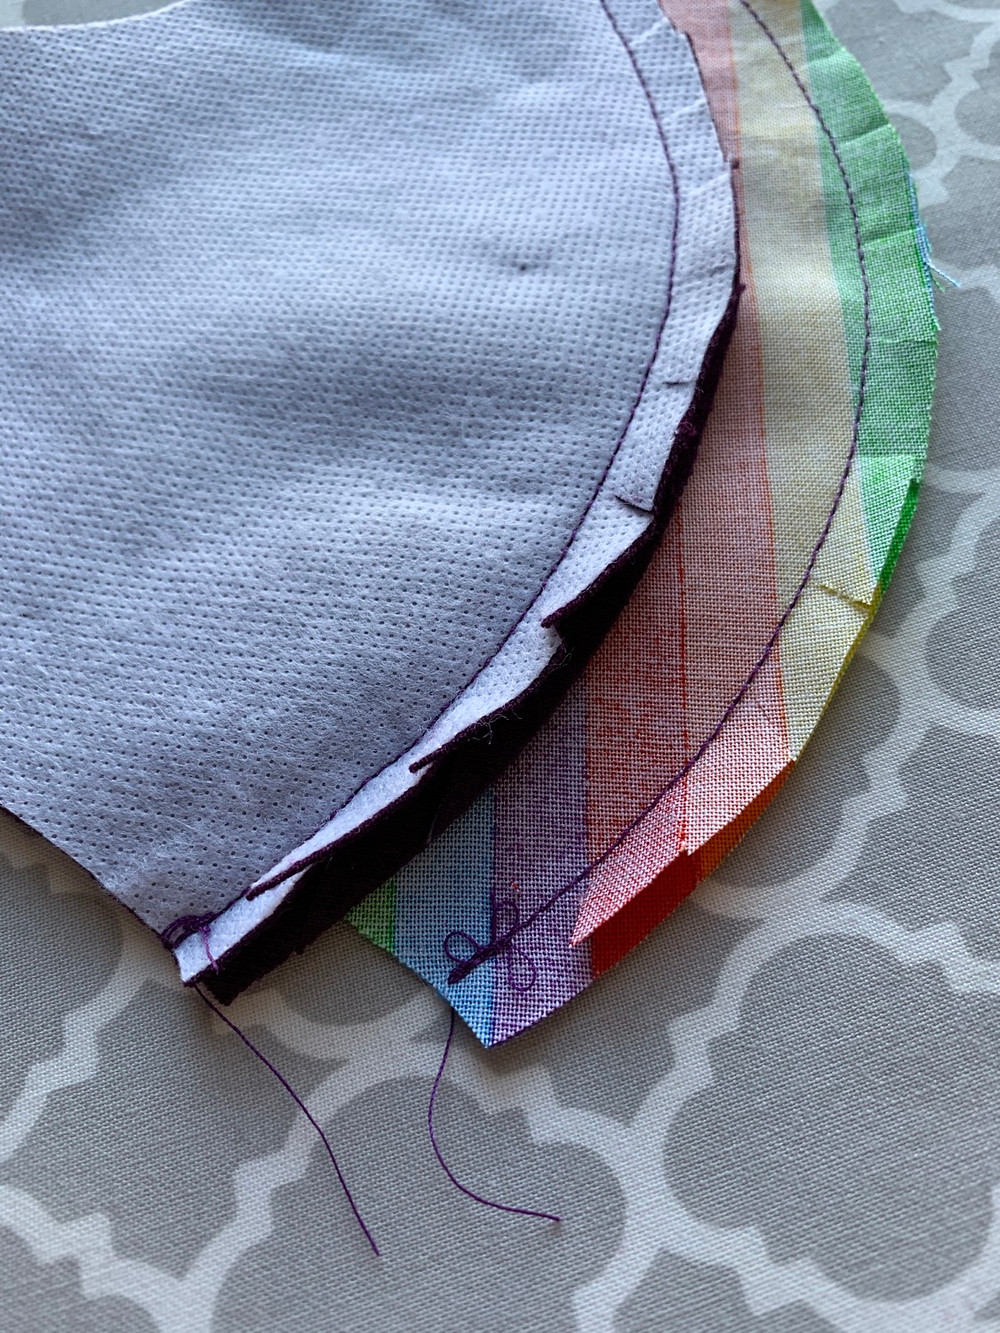 Snip along the curve of both pieces, being careful not to cut through the stitching.